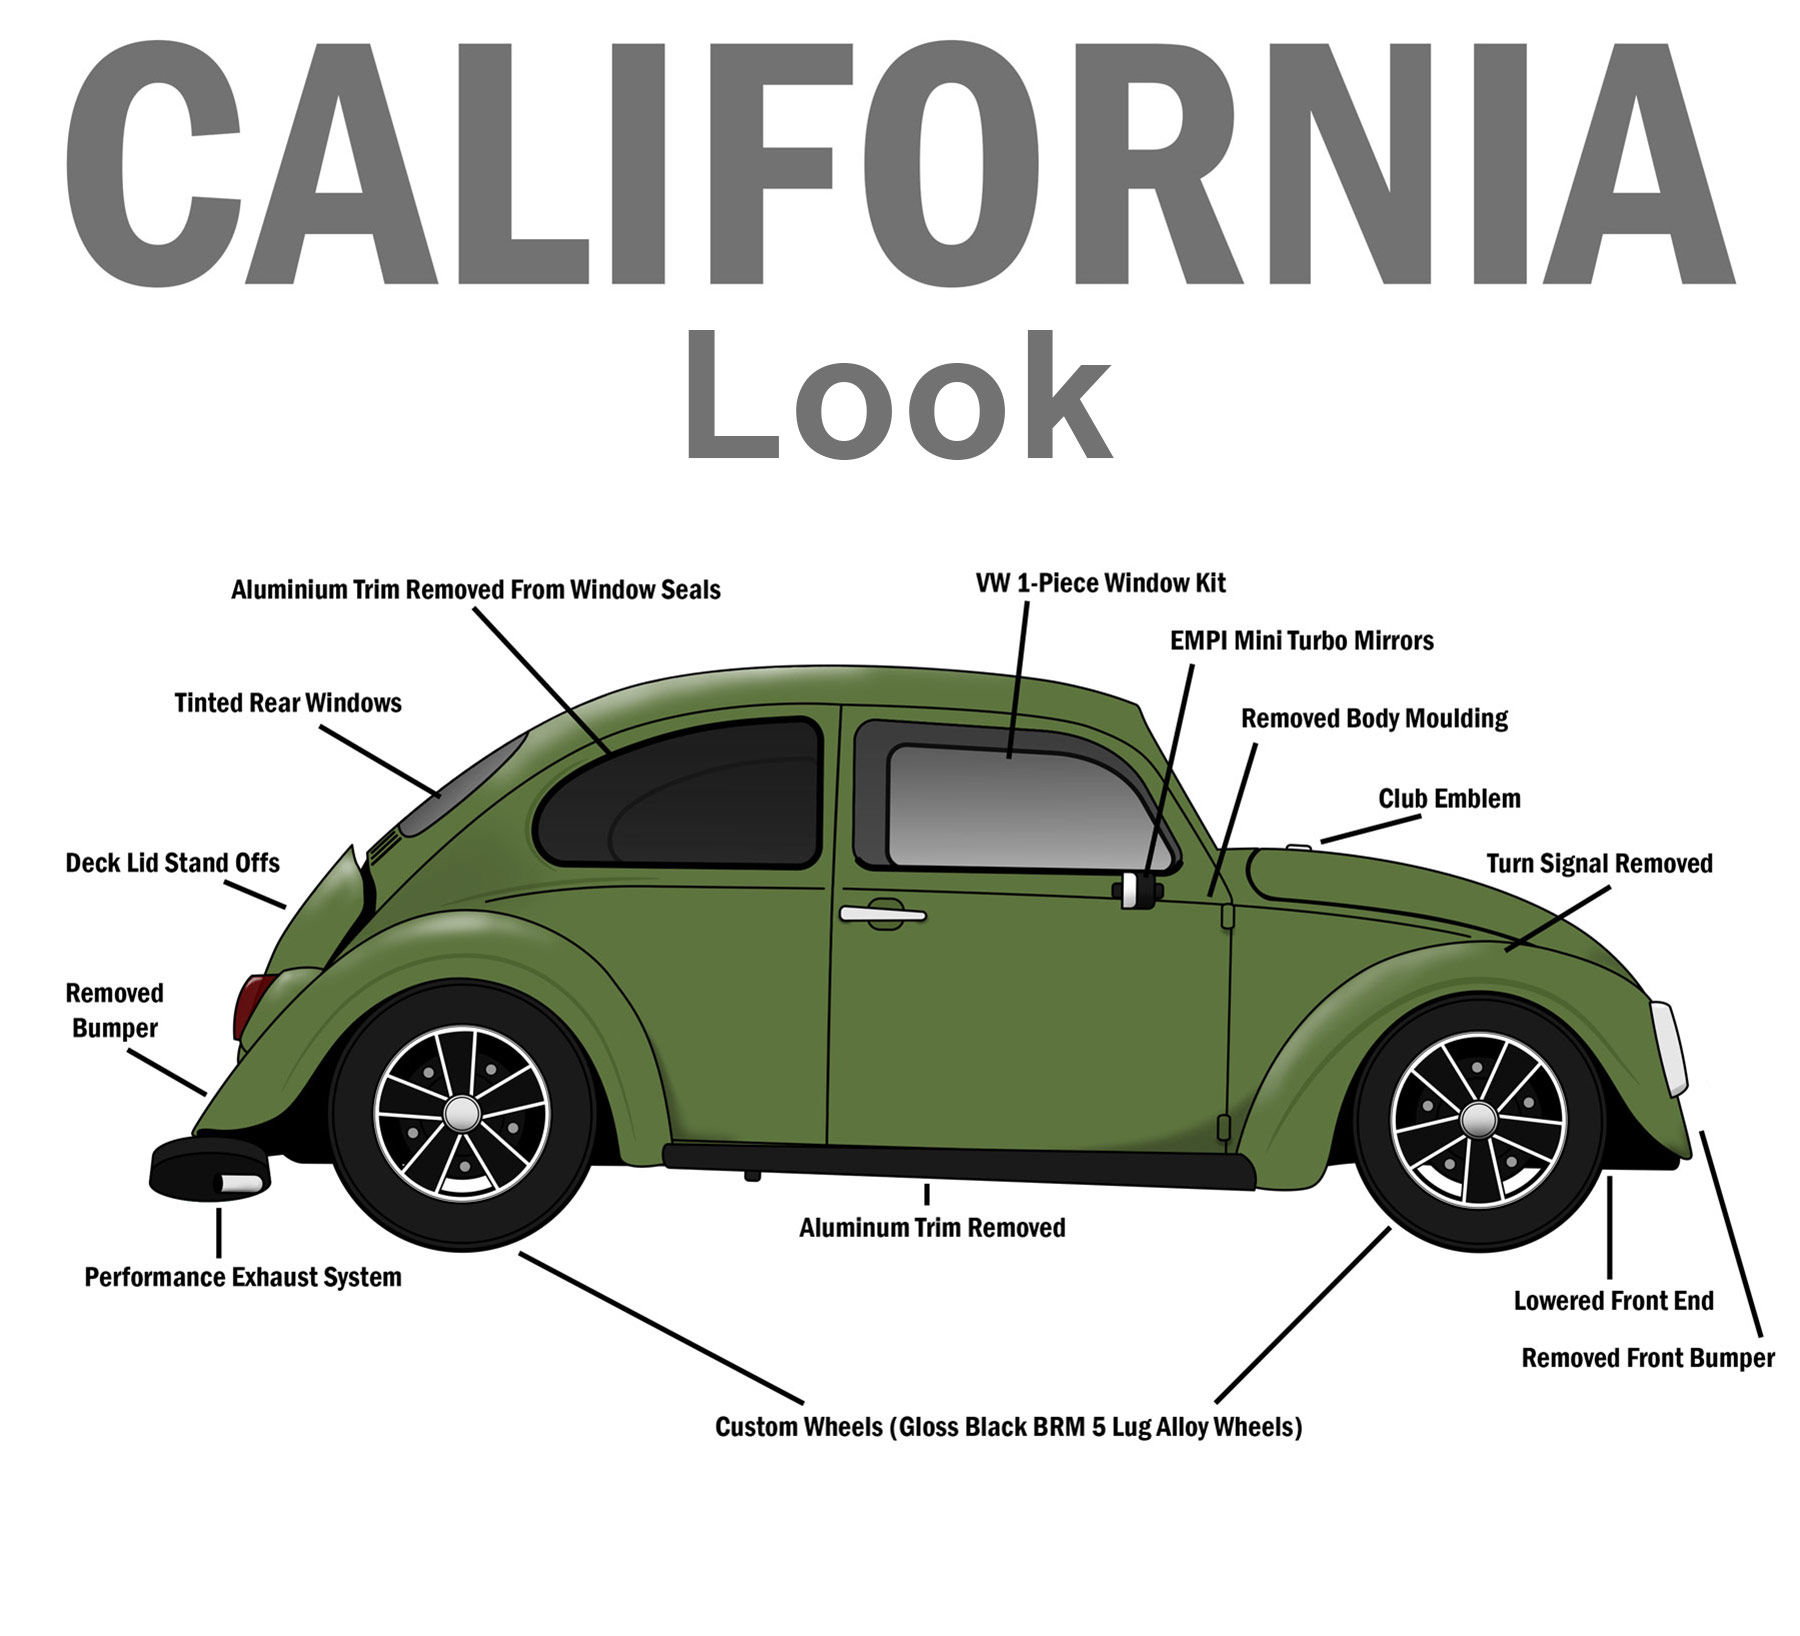 Vw Parts Cal Look Vs American Style Whats The Difference Pat Sunroof Wiring A California Looker Is Air Cooled Modified To Popular Fashion Which Originated In 1960s Orange County